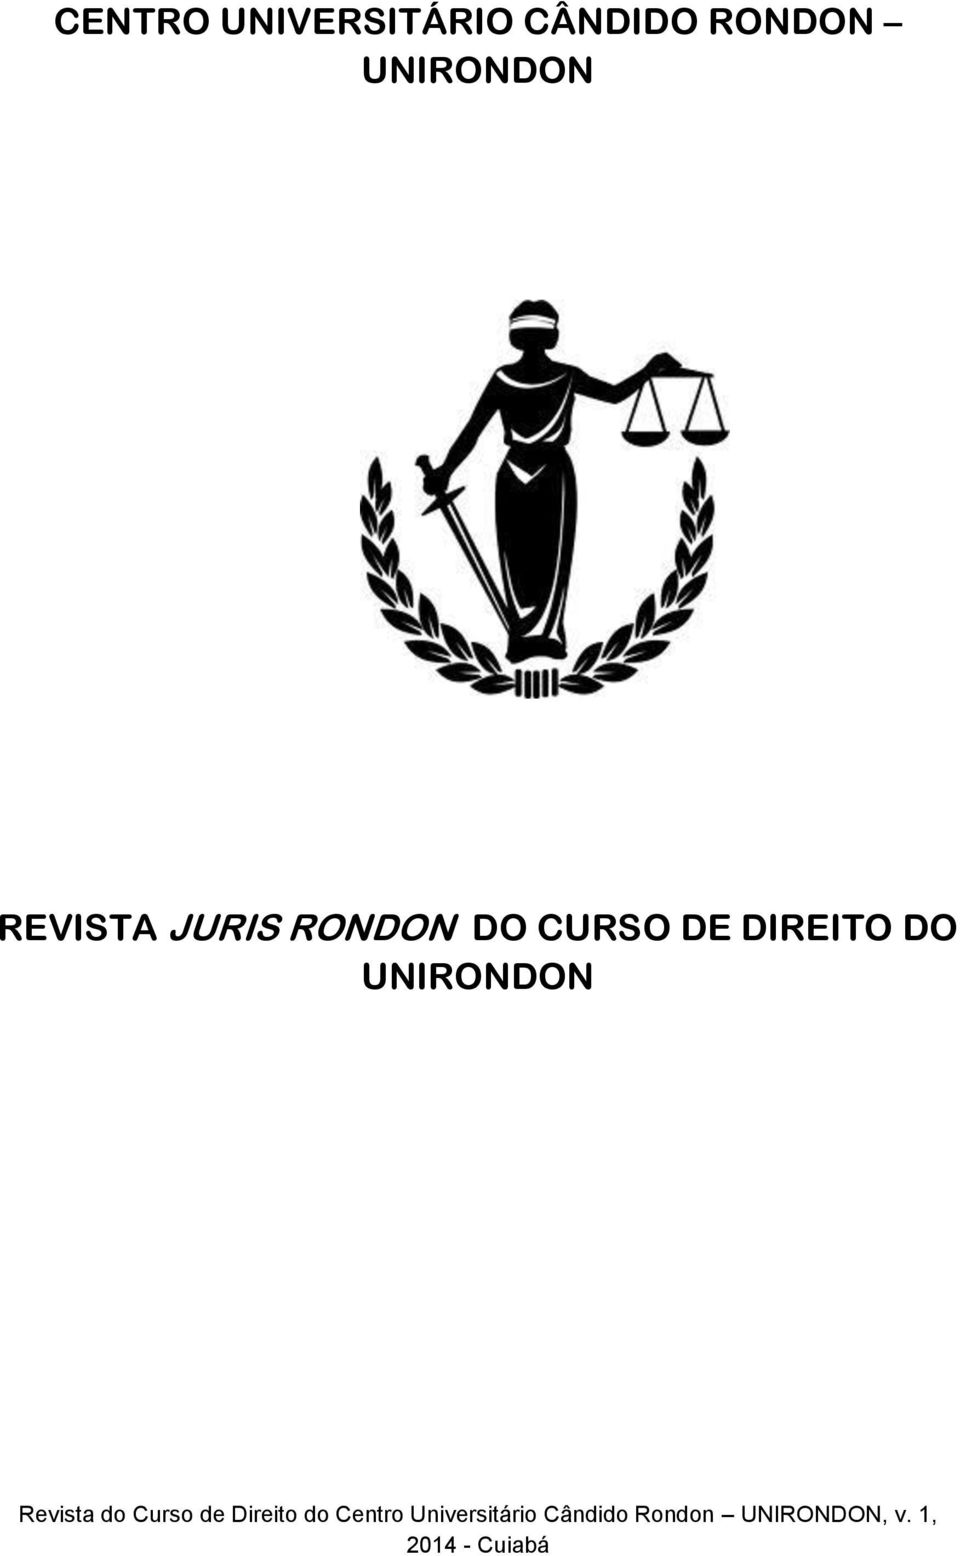 UNIRONDON Revista do Curso de Direito do Centro